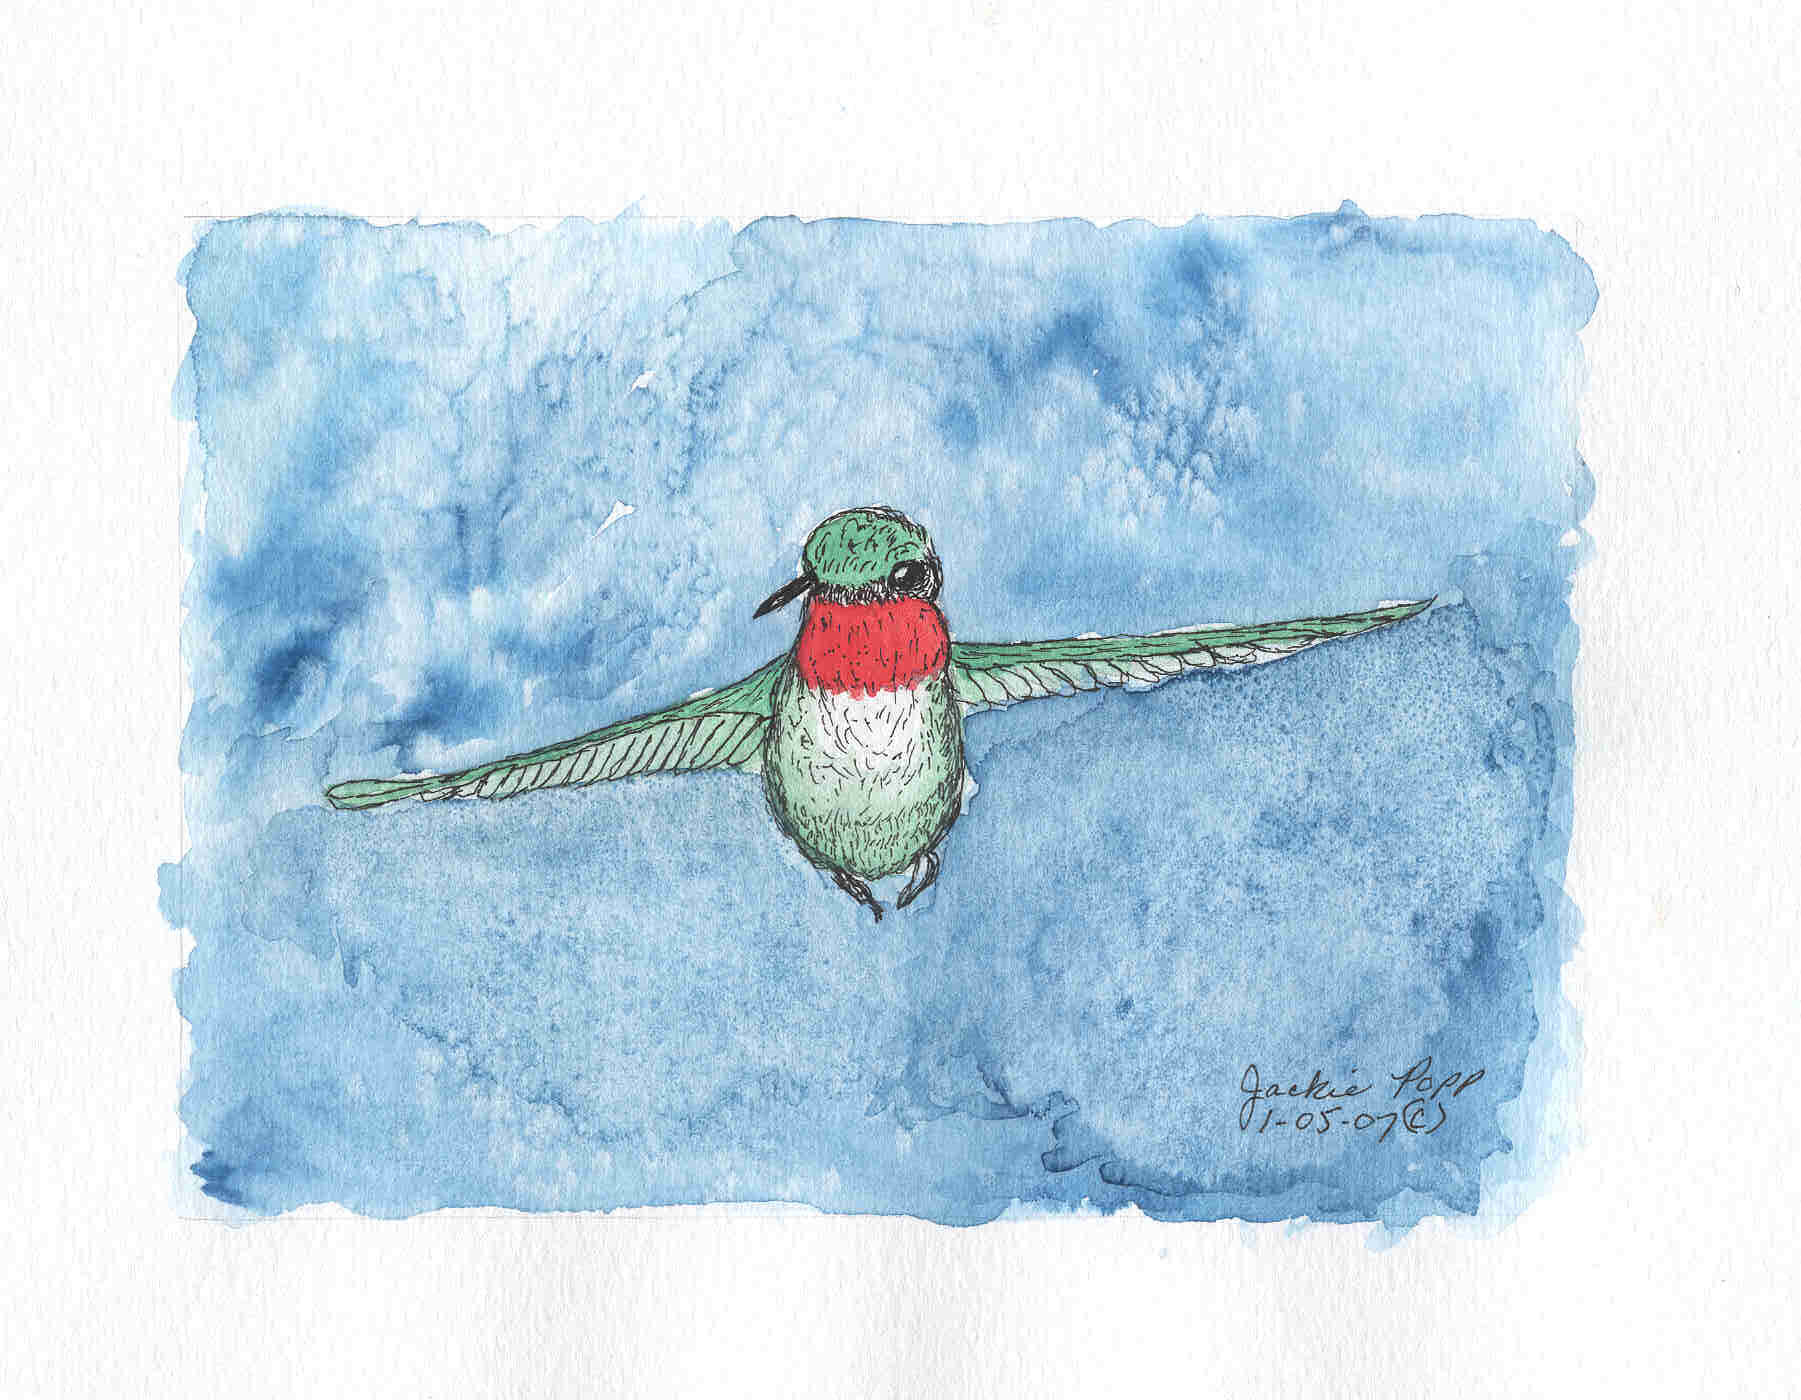 Humming bird in pen and ink watercolor